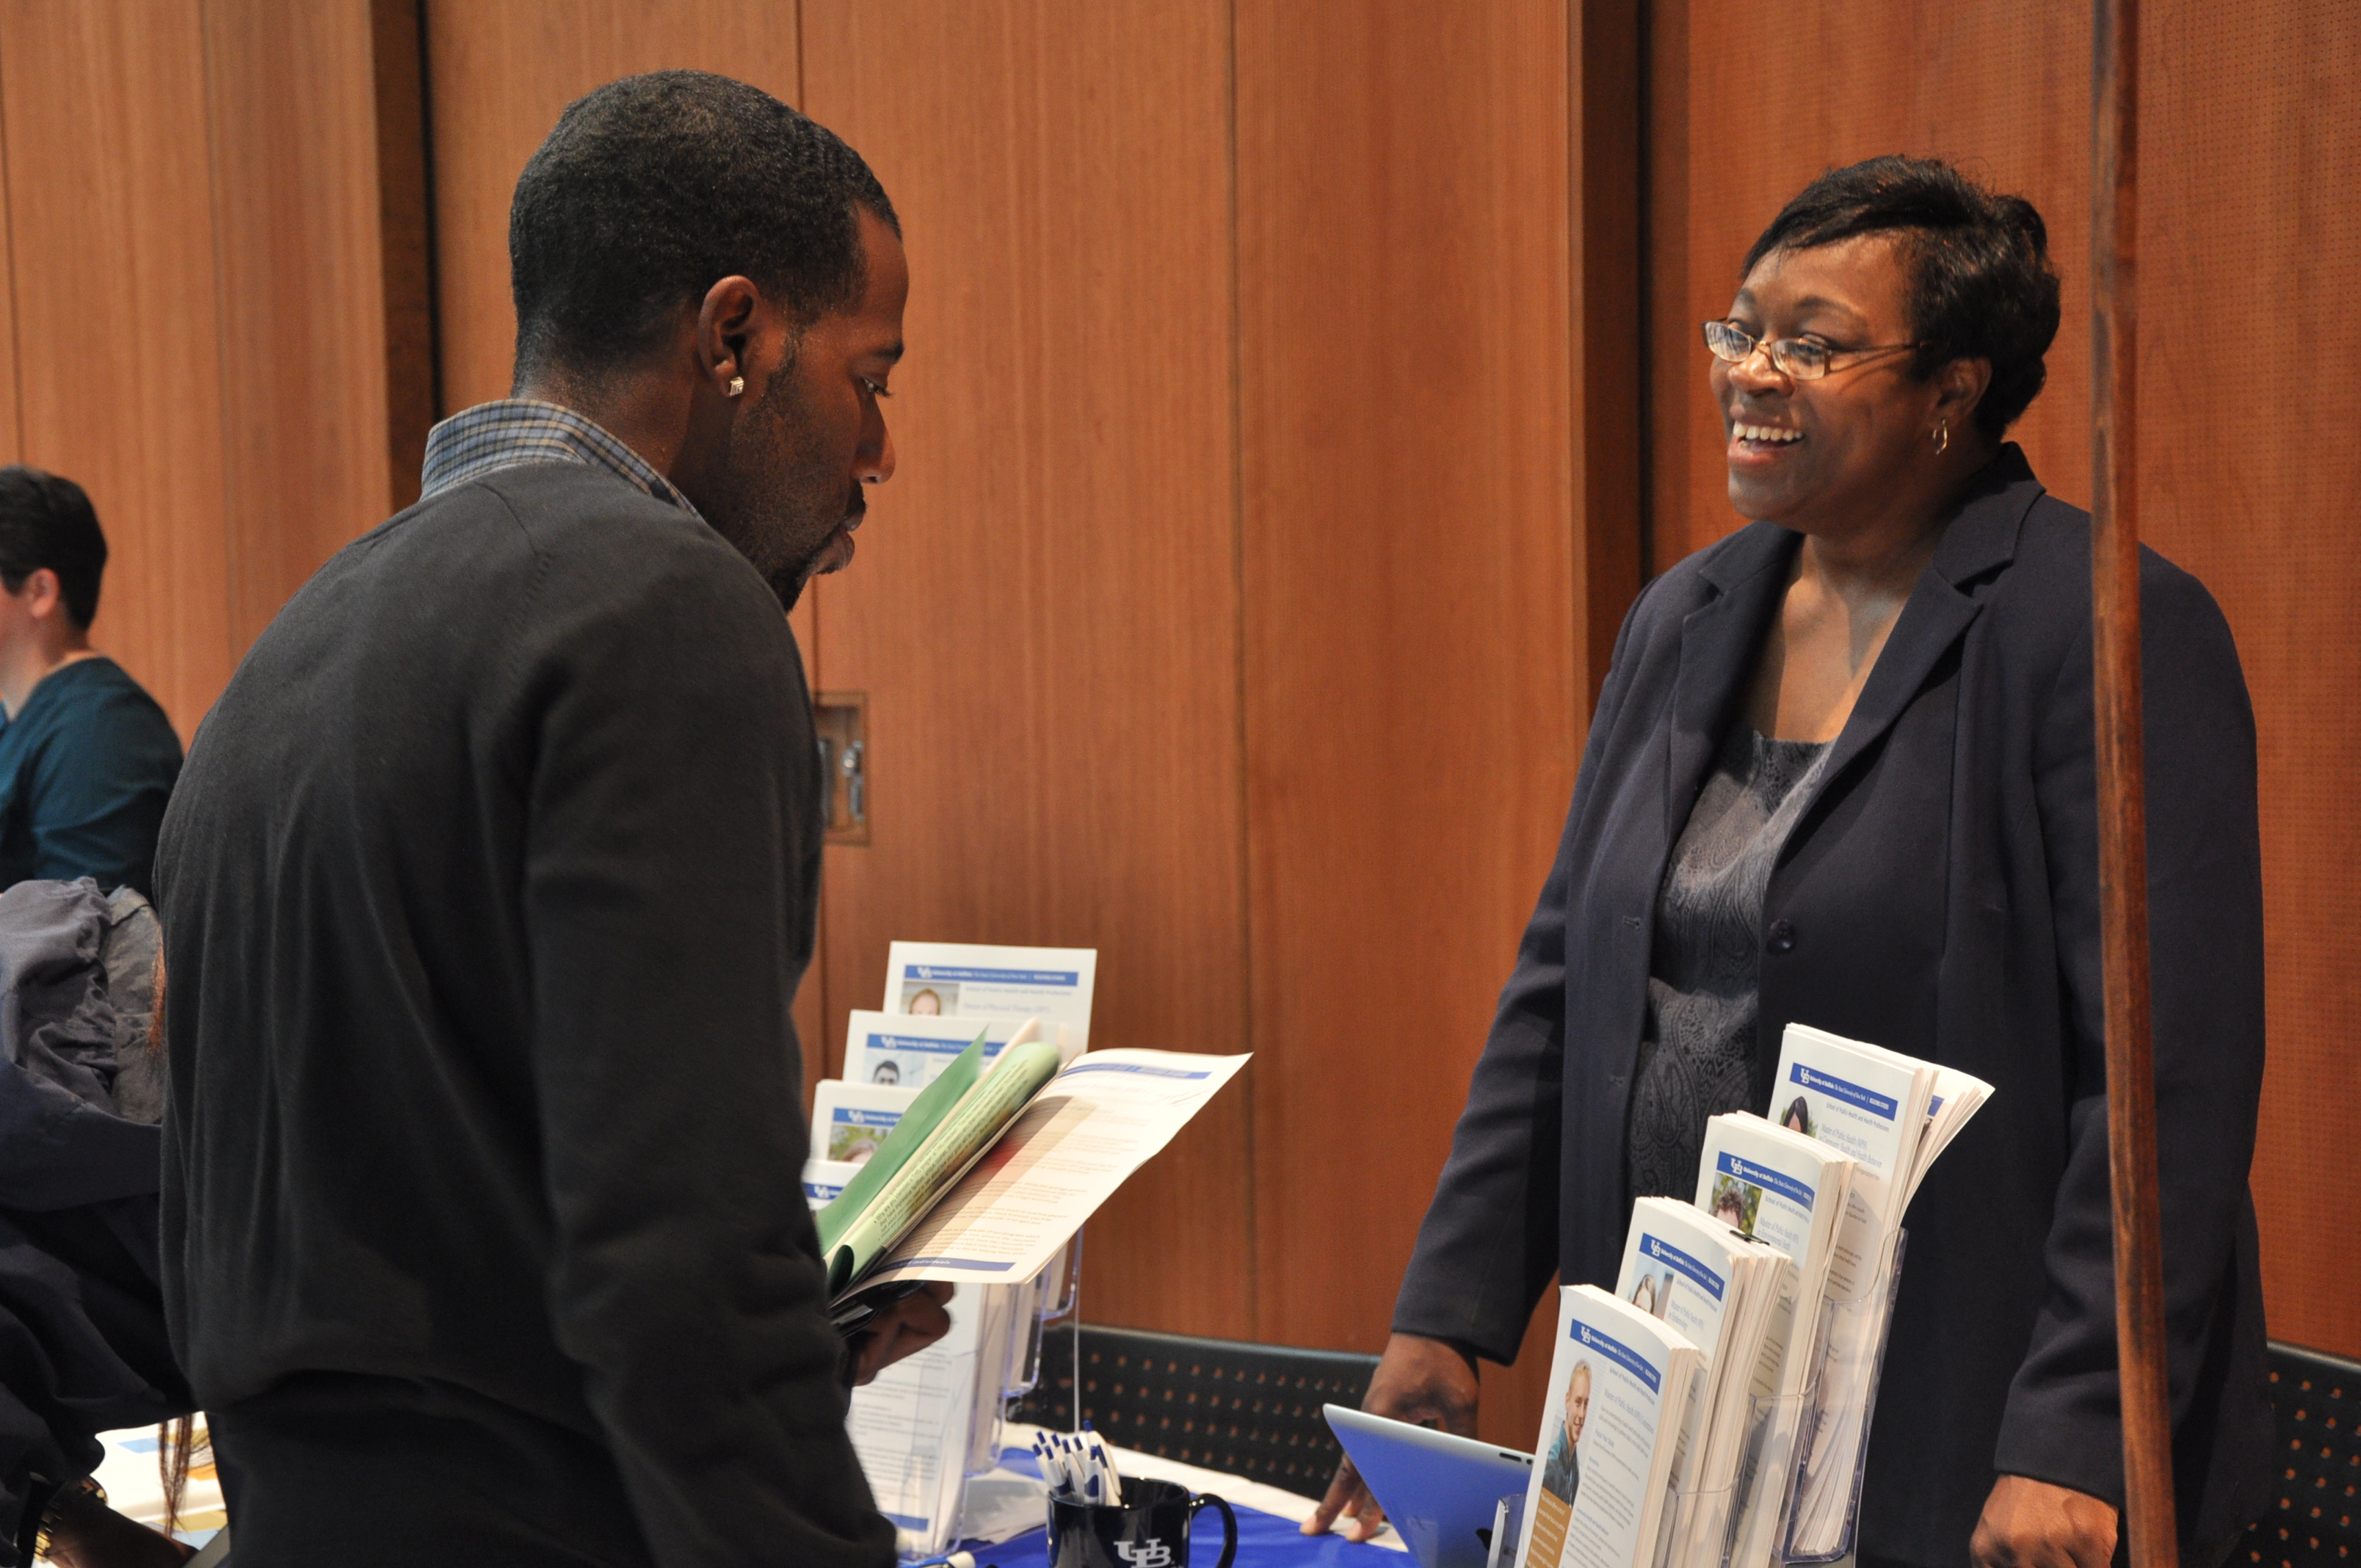 Prepare for Graduate School - Student interacting with a recruiter at the fair